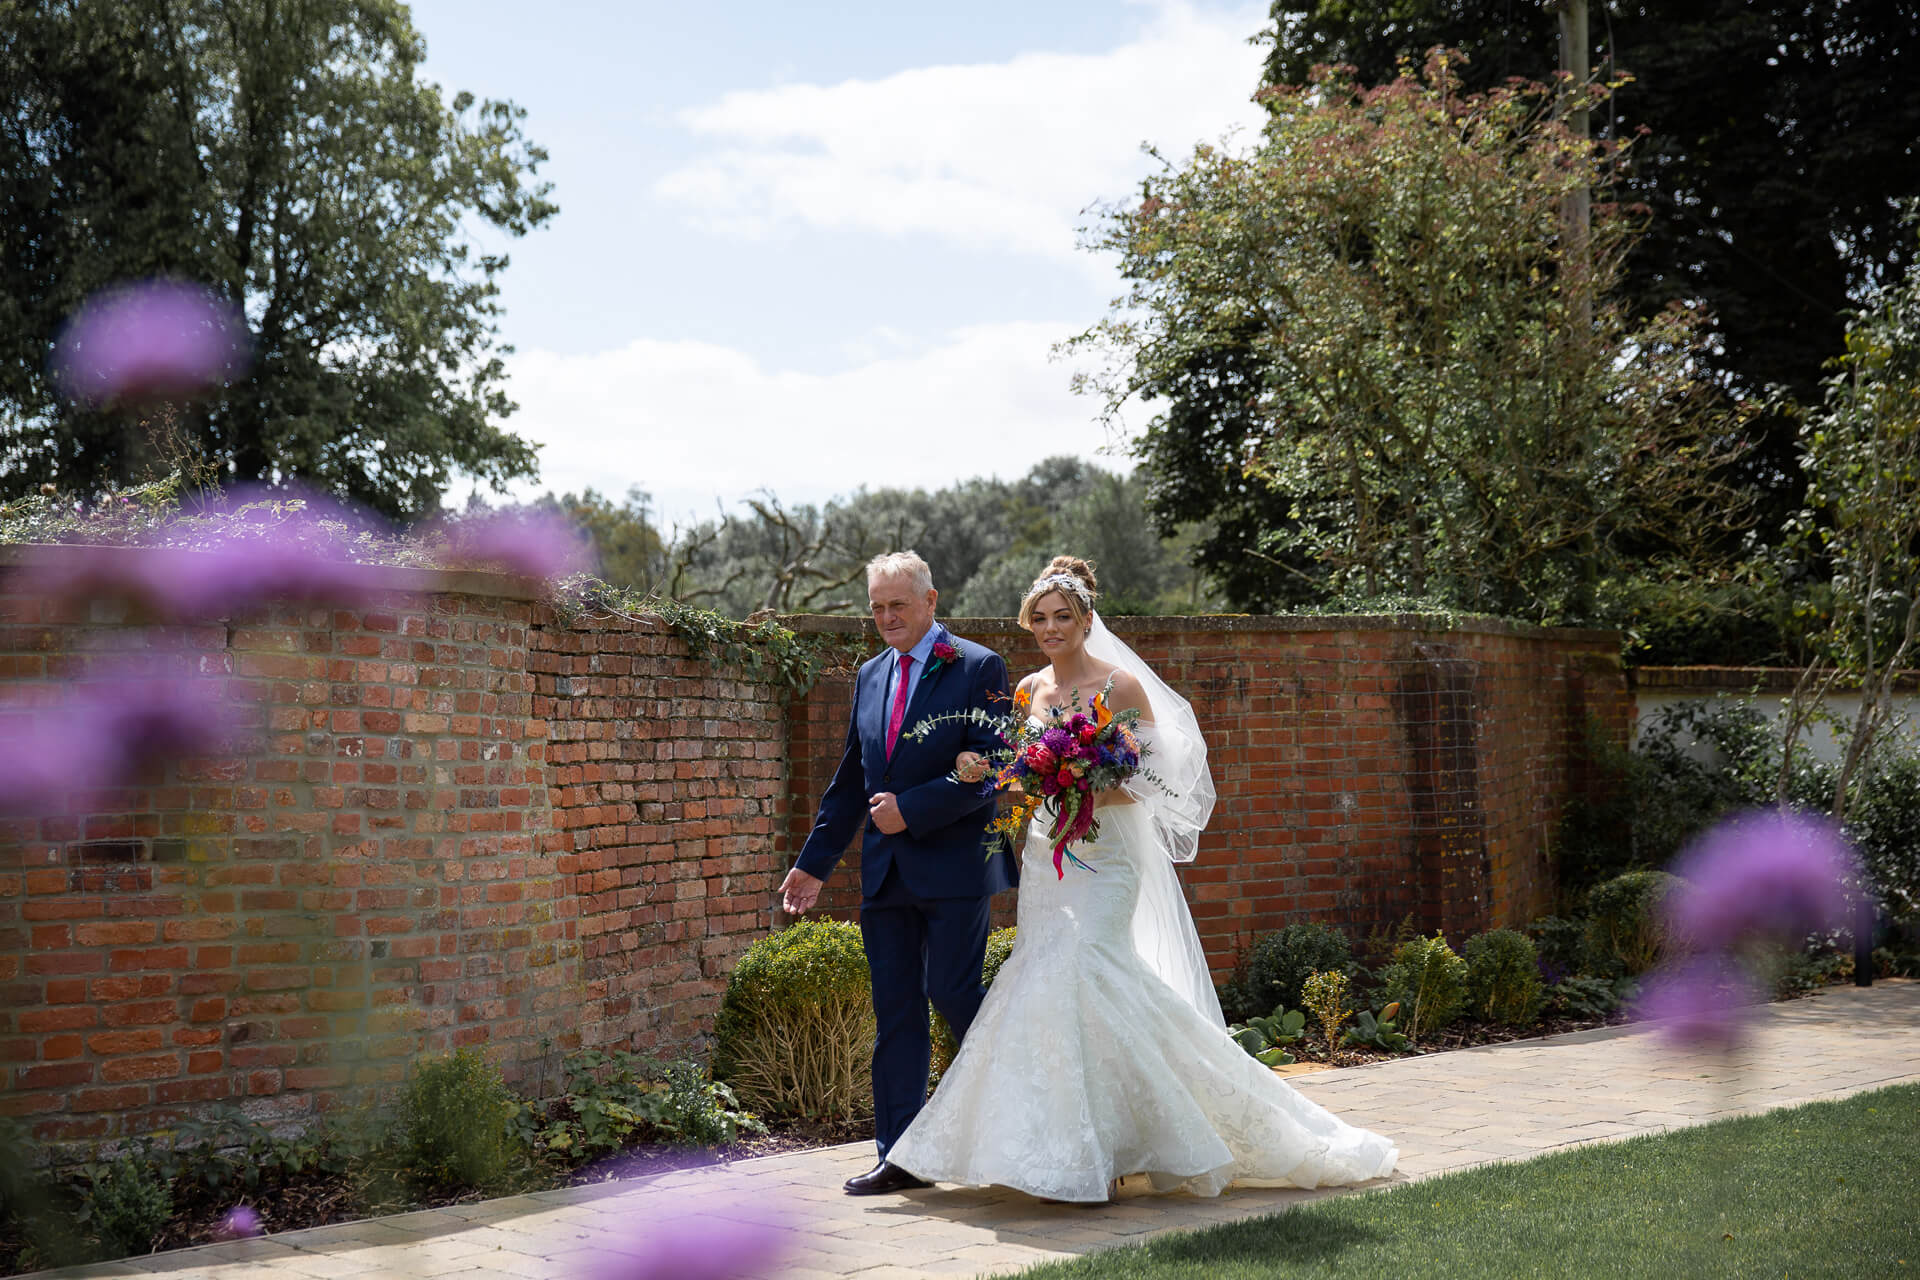 Father and Bride in the Walled Garden before the ceremony